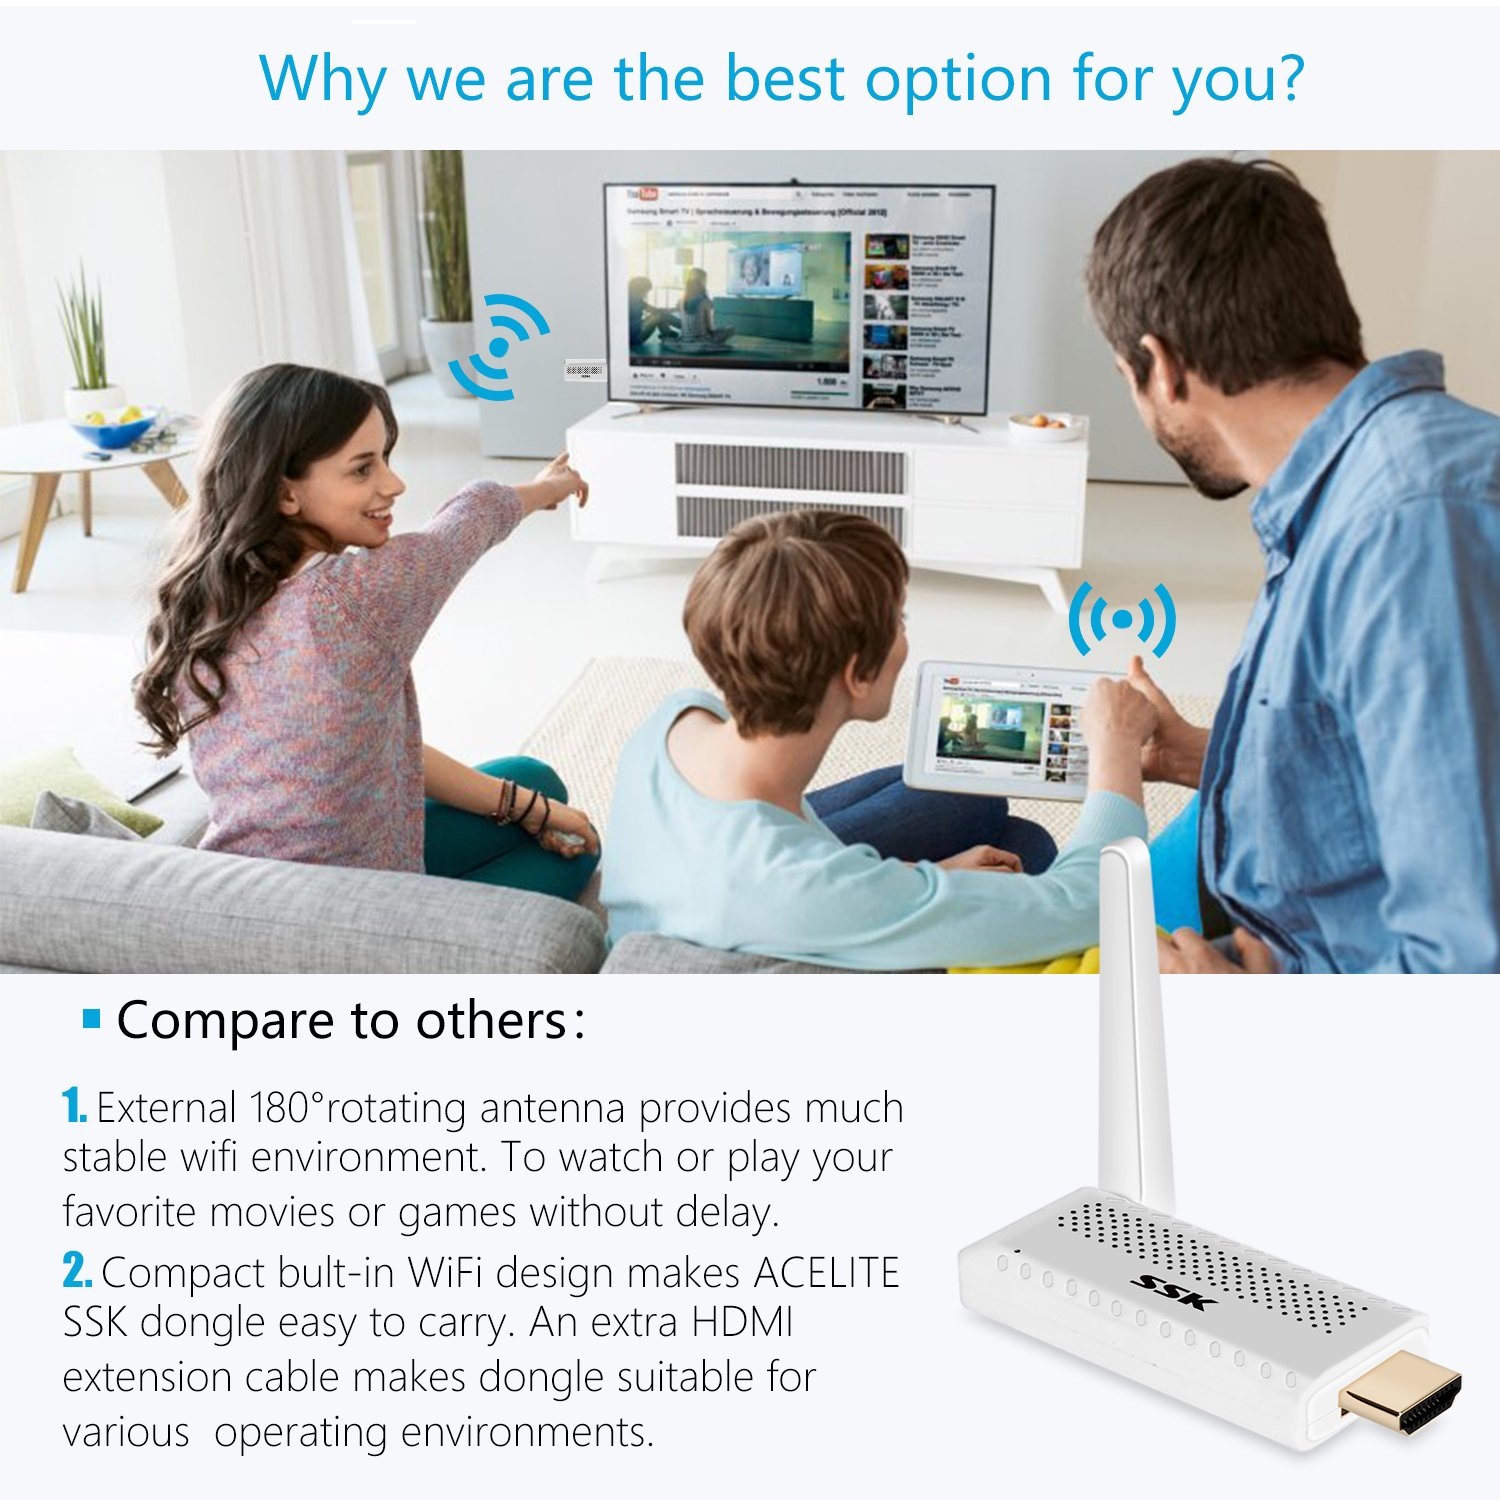 Miracast Dongle/Airplay Dongle/WiFi Display Dongle, 1080P 2.4G/5G Wireless Display Adapter Support HDMI and WIFI Cast Media, Image, PPT to TV, Projector, and Monitor from Android/iOS/Mac/Windows by ACELITE (Image #4)